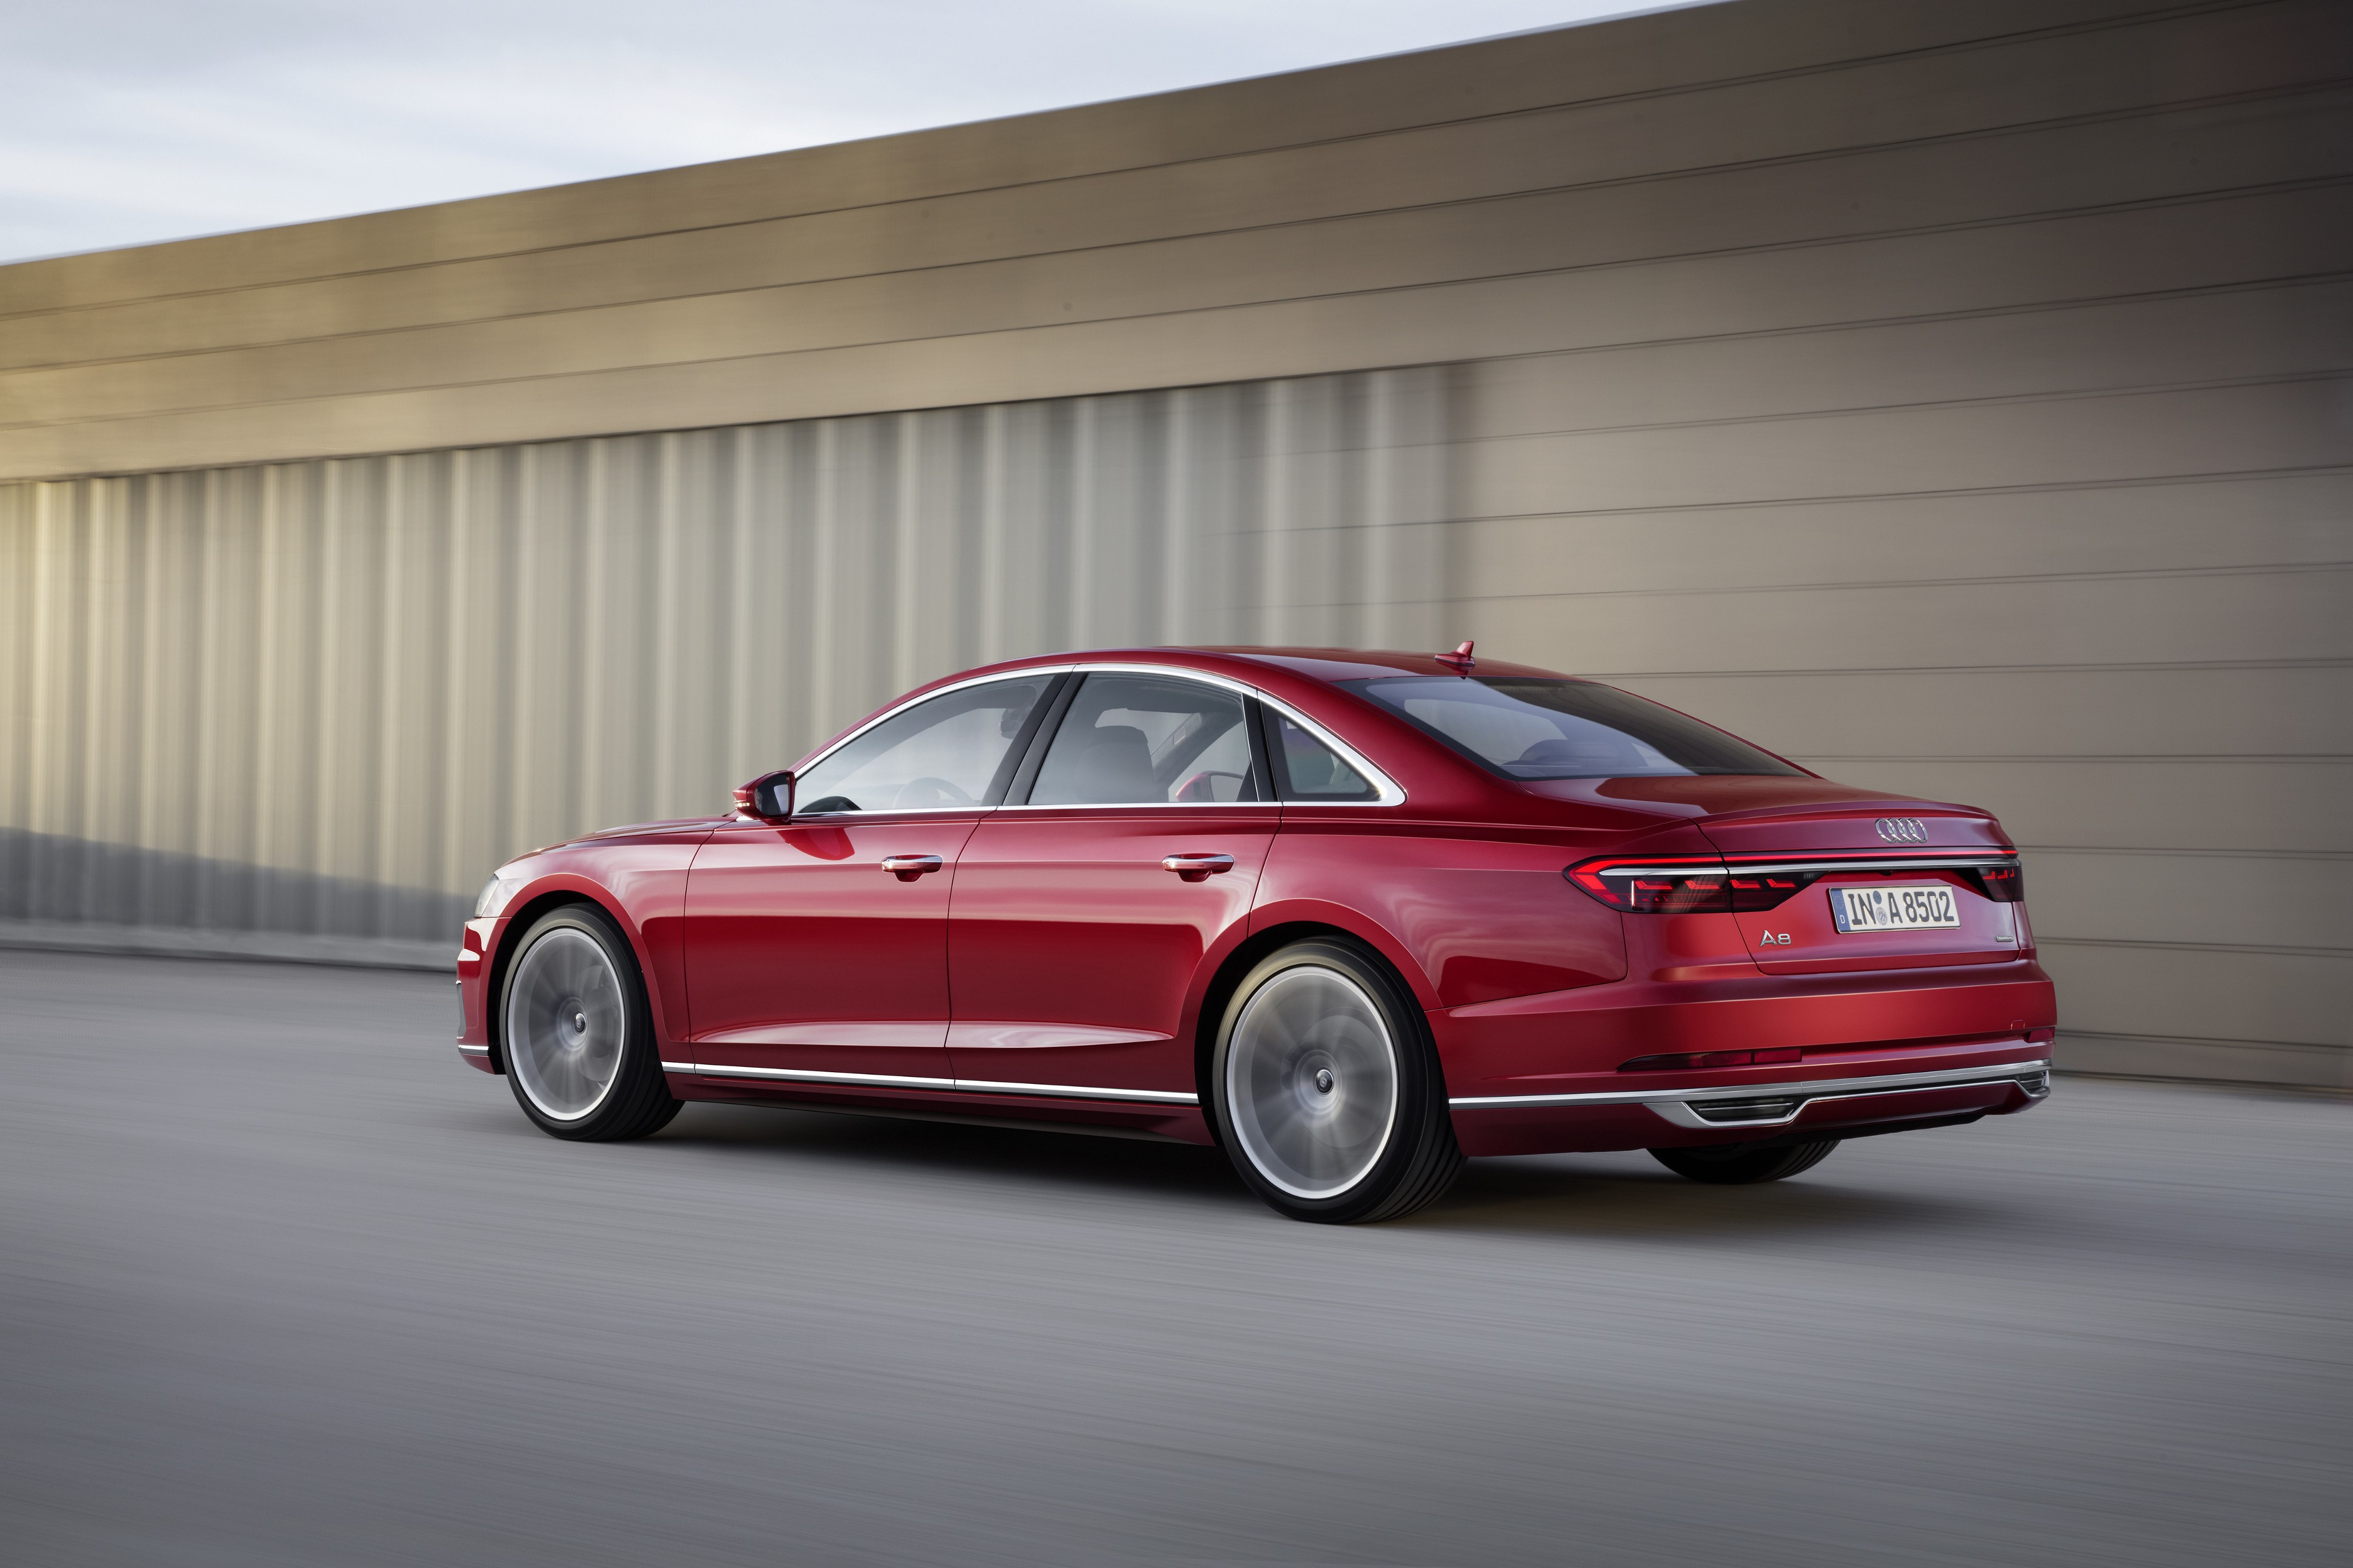 New Audi A8 : Entrepreneurs will laugh when they will see